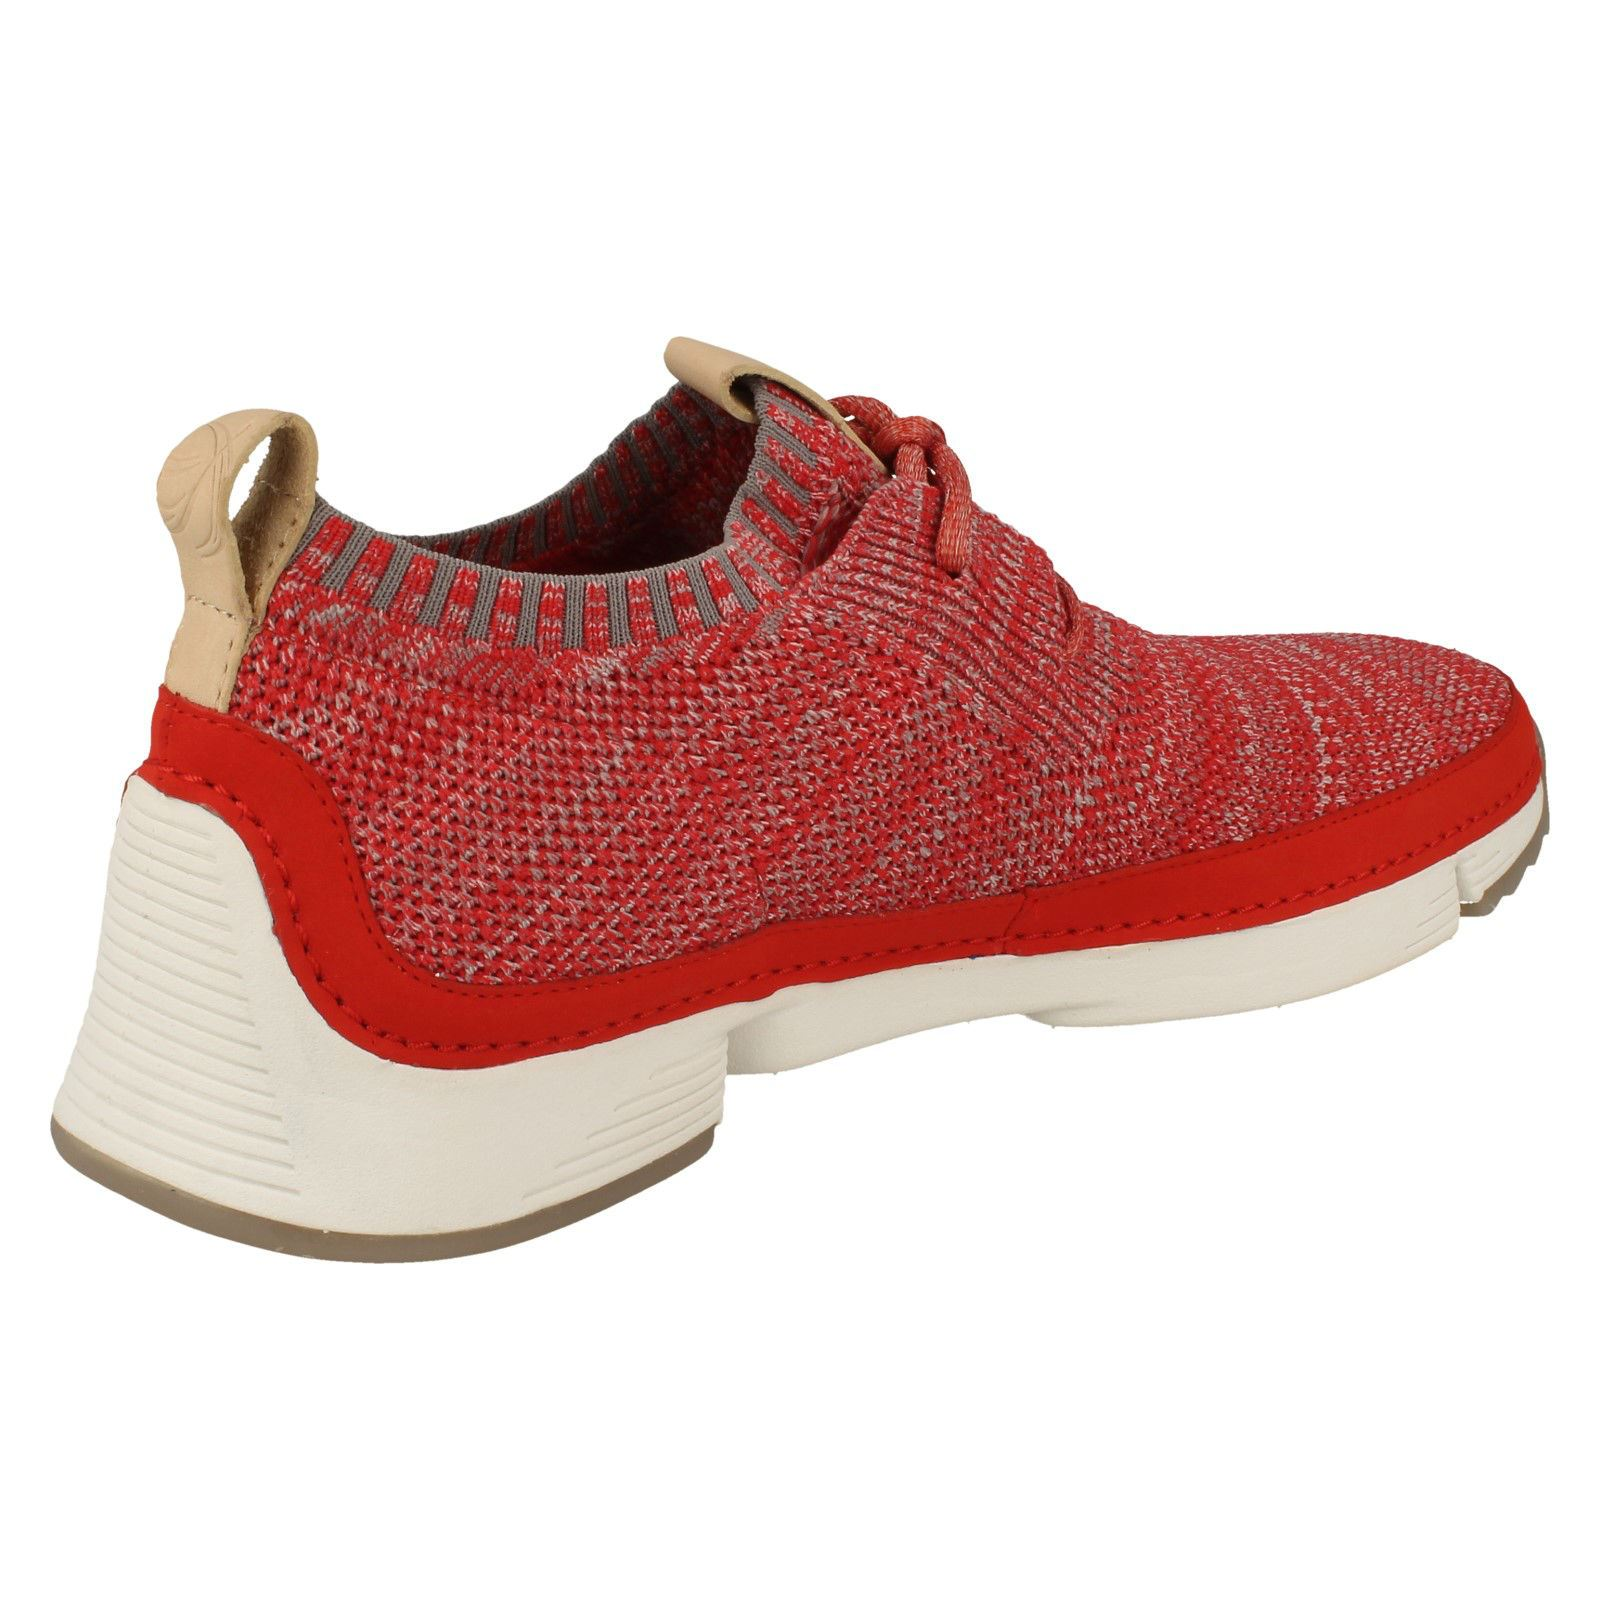 Mens-Clarks-Casual-Lace-Up-Trainers-Tri-Native thumbnail 13